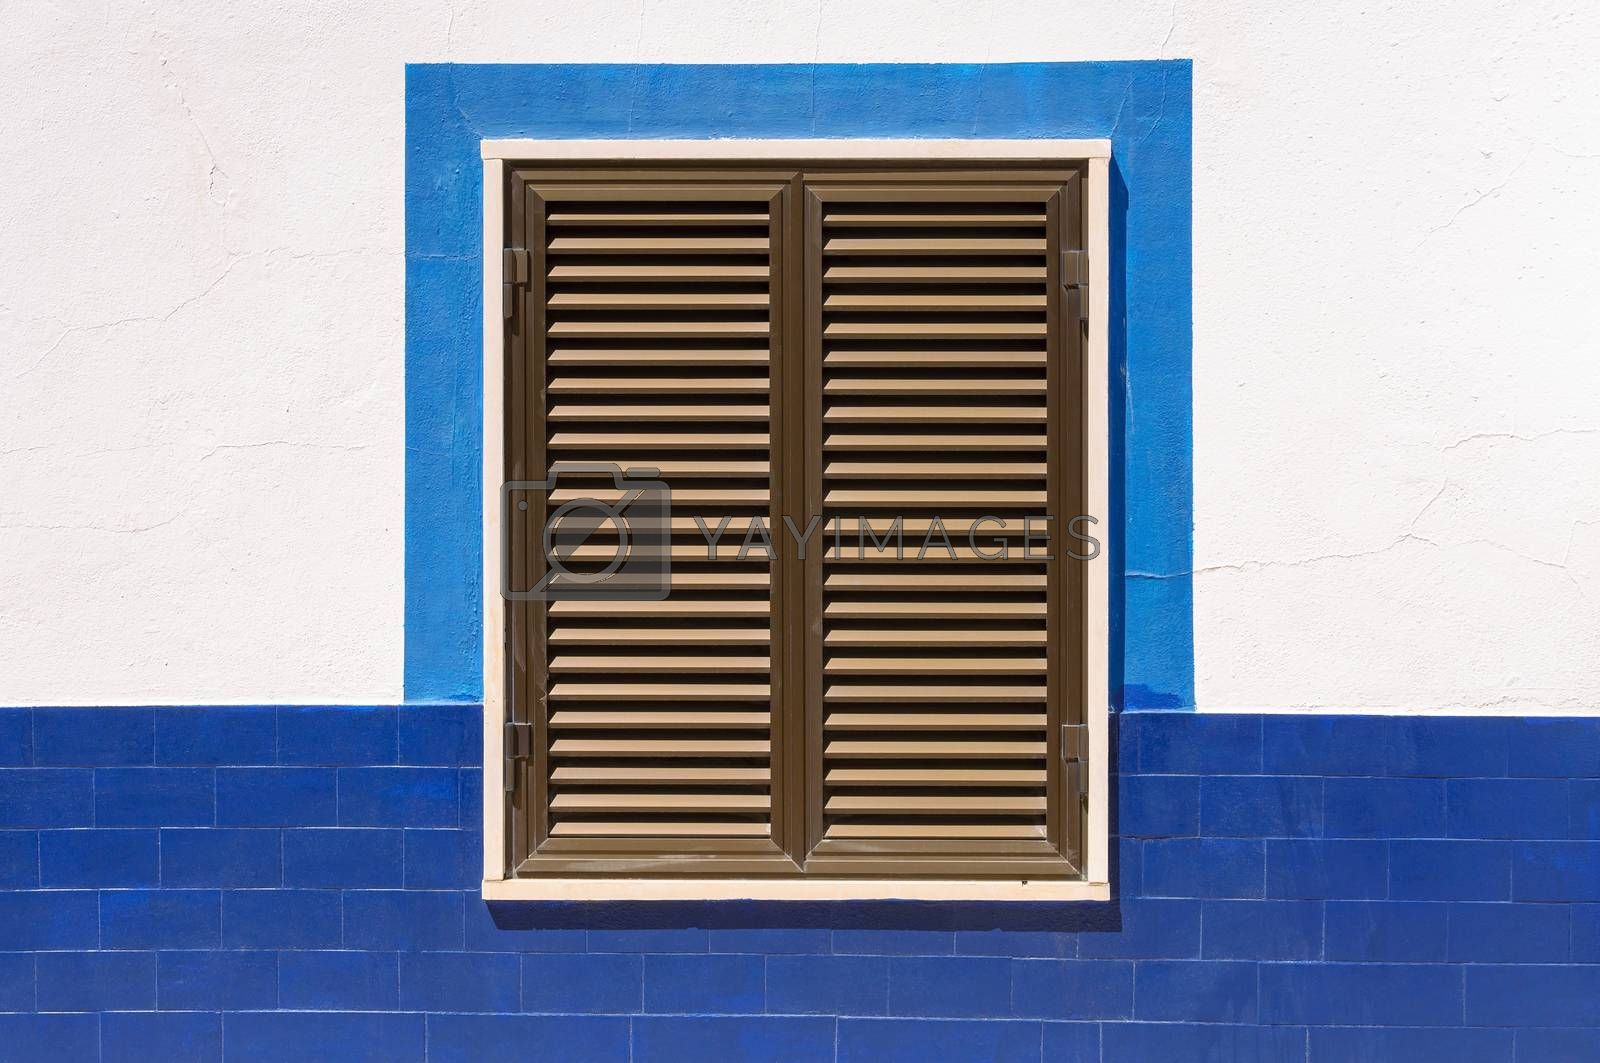 Royalty free image of Closed window shutters of an mediterranean house by mkos83